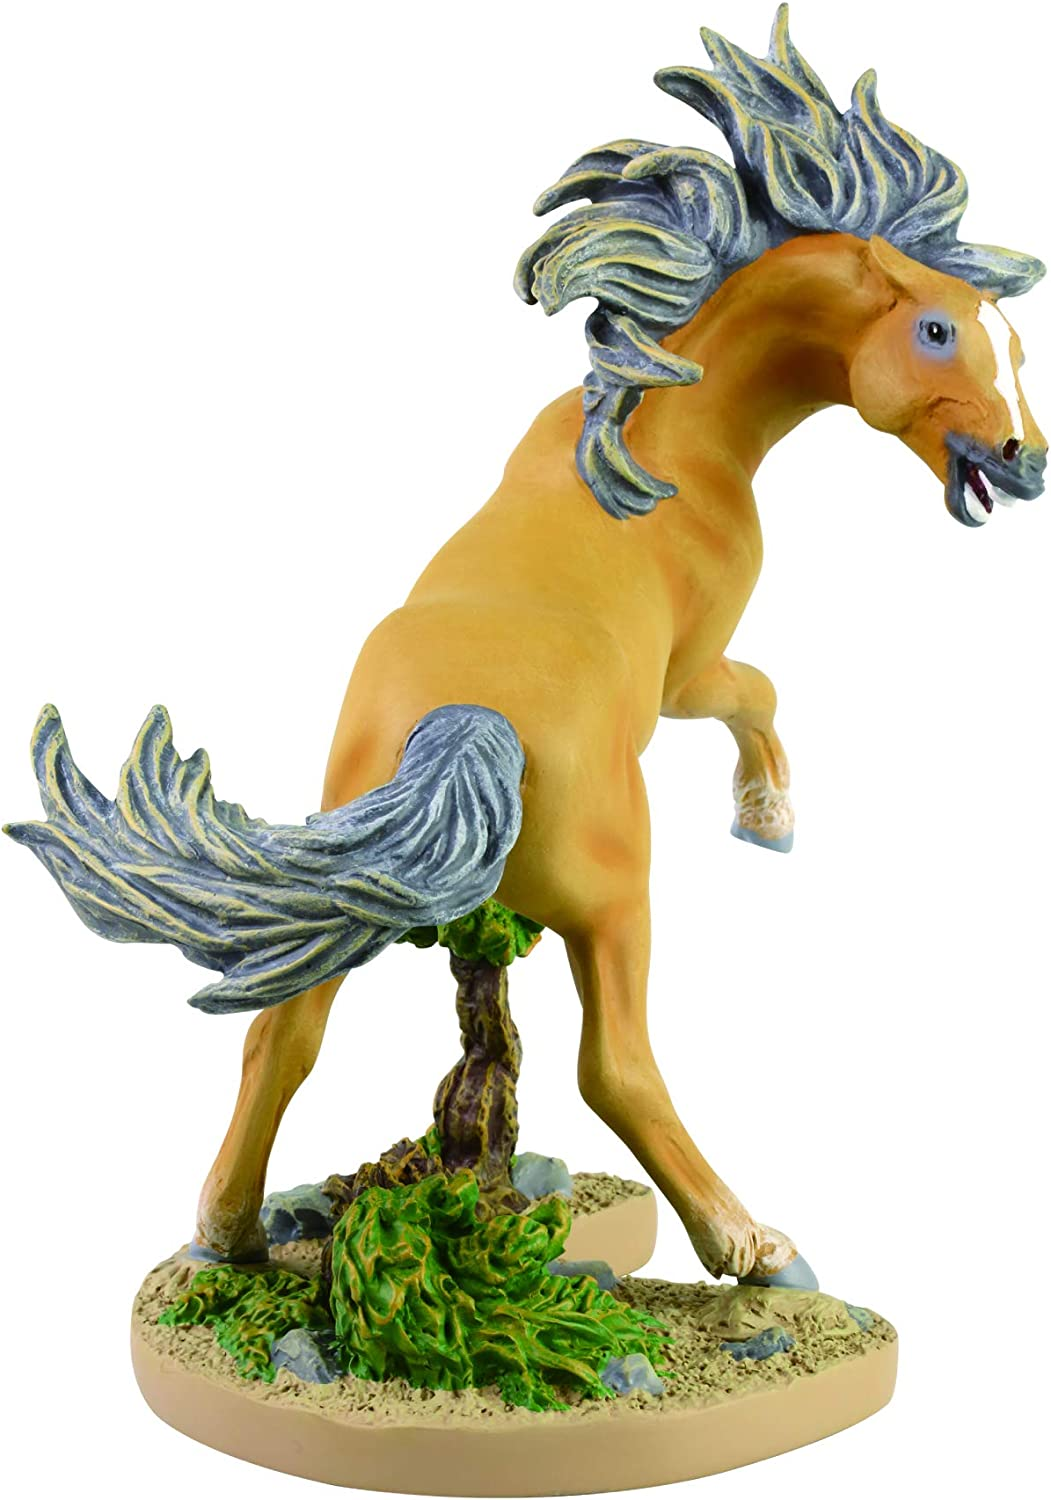 Excellence Enesco Trail Sales for sale of Painted Ponies Inch Figurine Multi 9.06 Voodoo